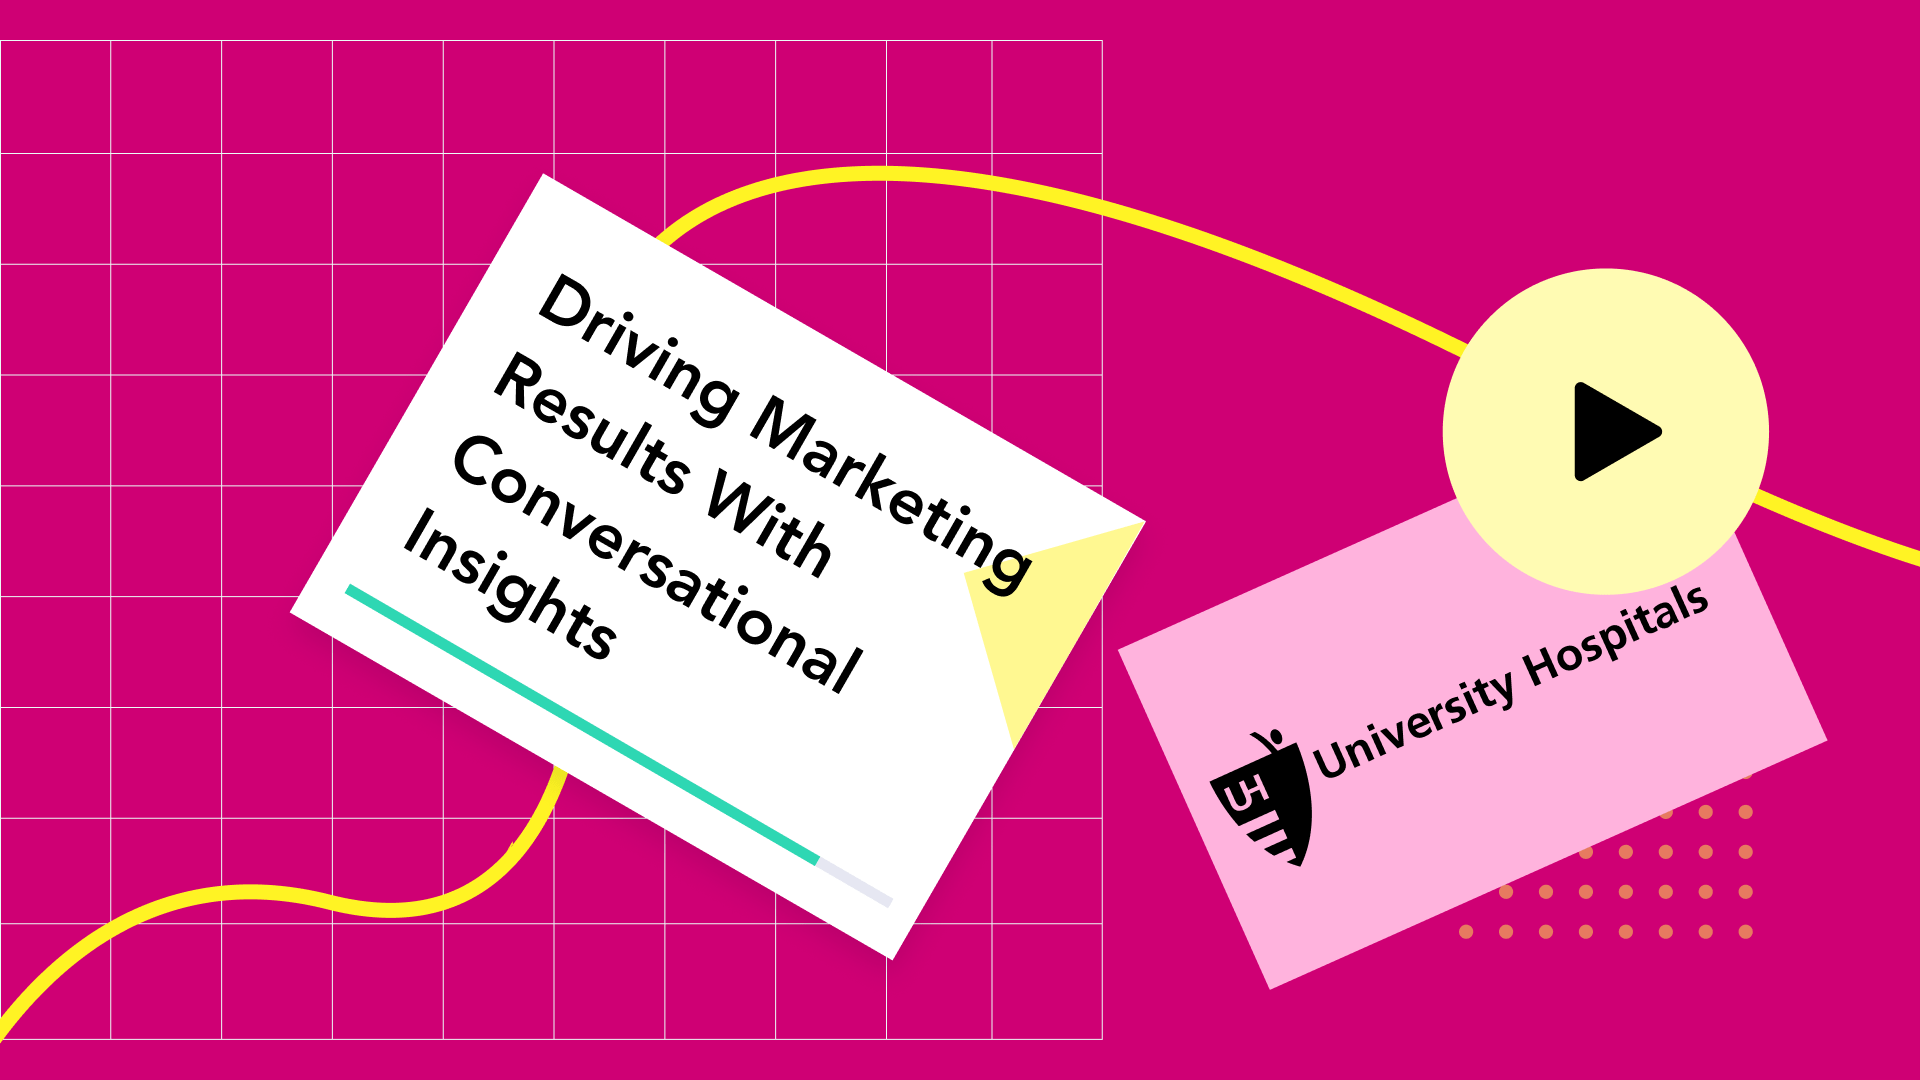 Driving Marketing Results With Conversational Insights